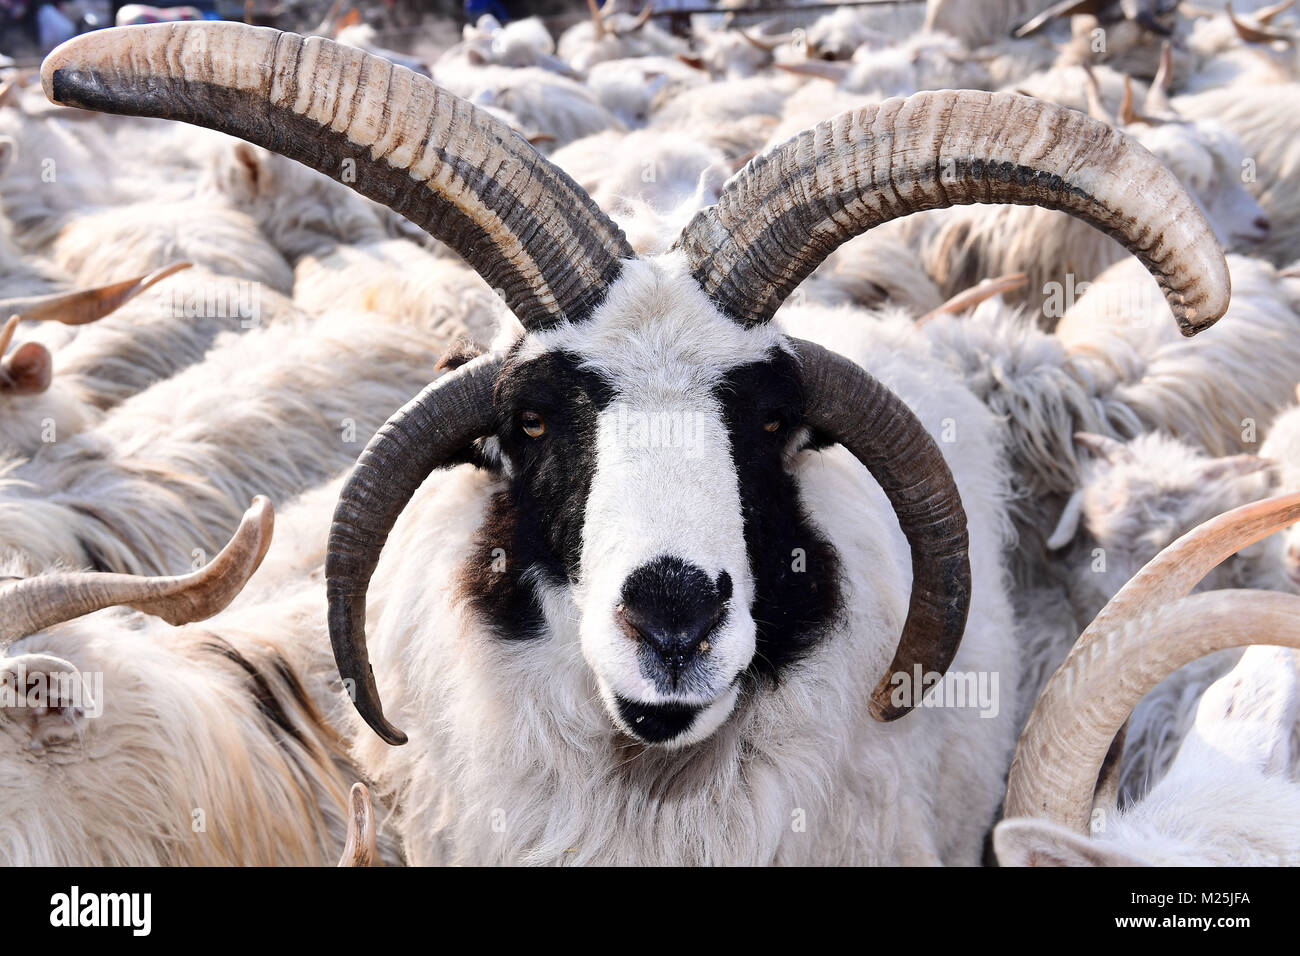 Shenyang, Shenyang, China. 5th Feb, 2018. Shenyang, CHINA-5th February 2018: A goat with four horns can be seen - Stock Image